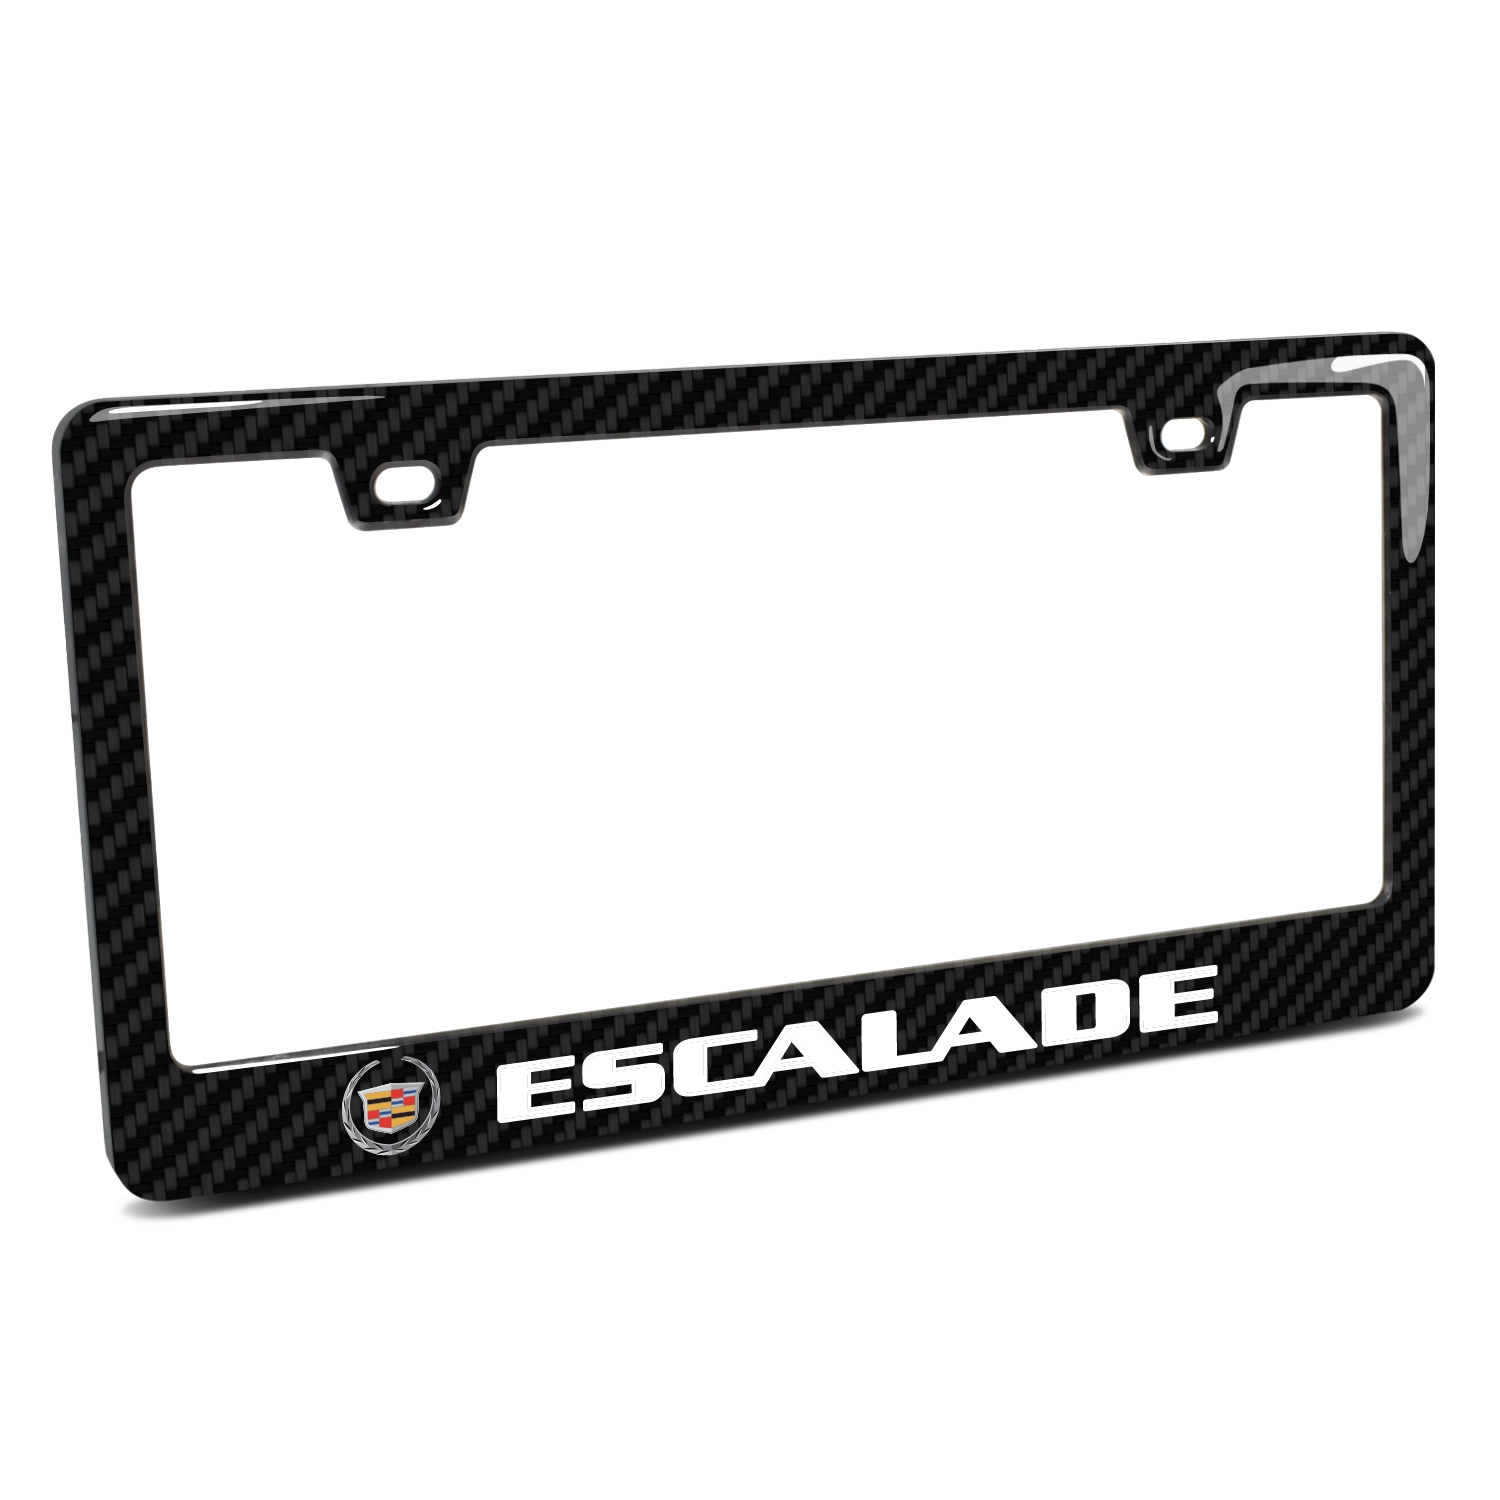 Cadillac Escalade Logo in 3D on Real 3K Carbon Fiber Finish ABS Plastic License Plate Frame